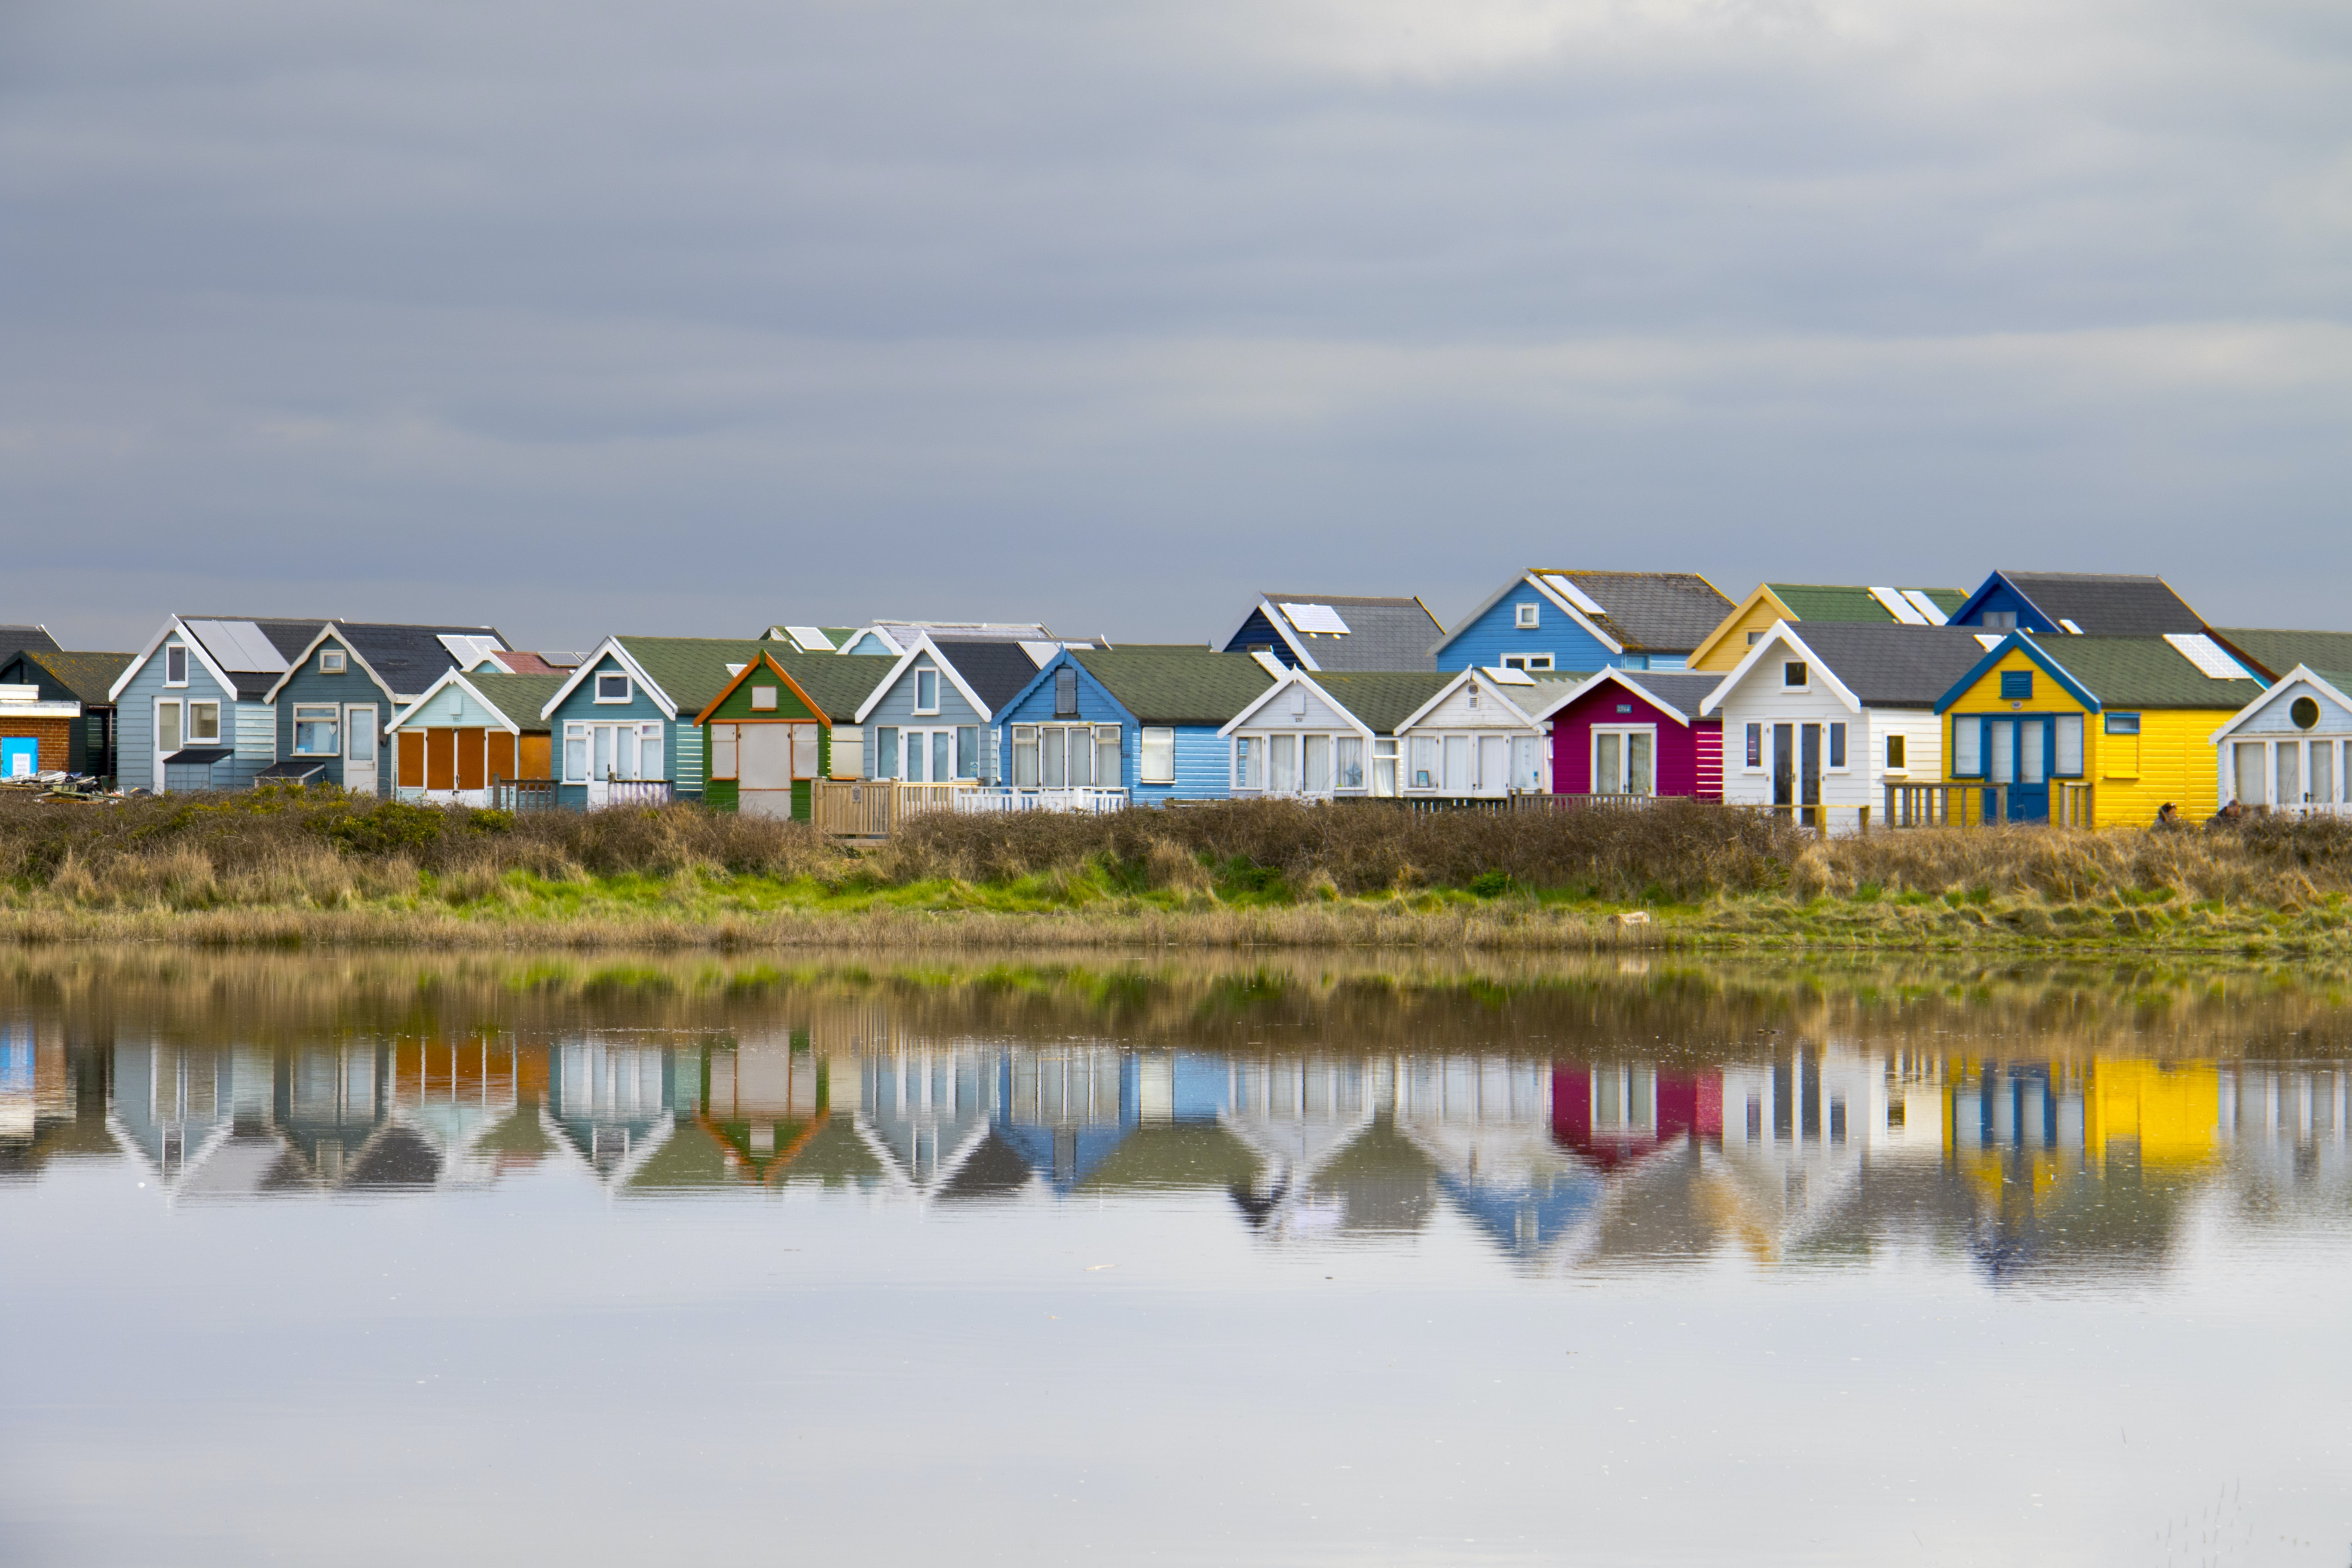 panoramic photography of colorful houses